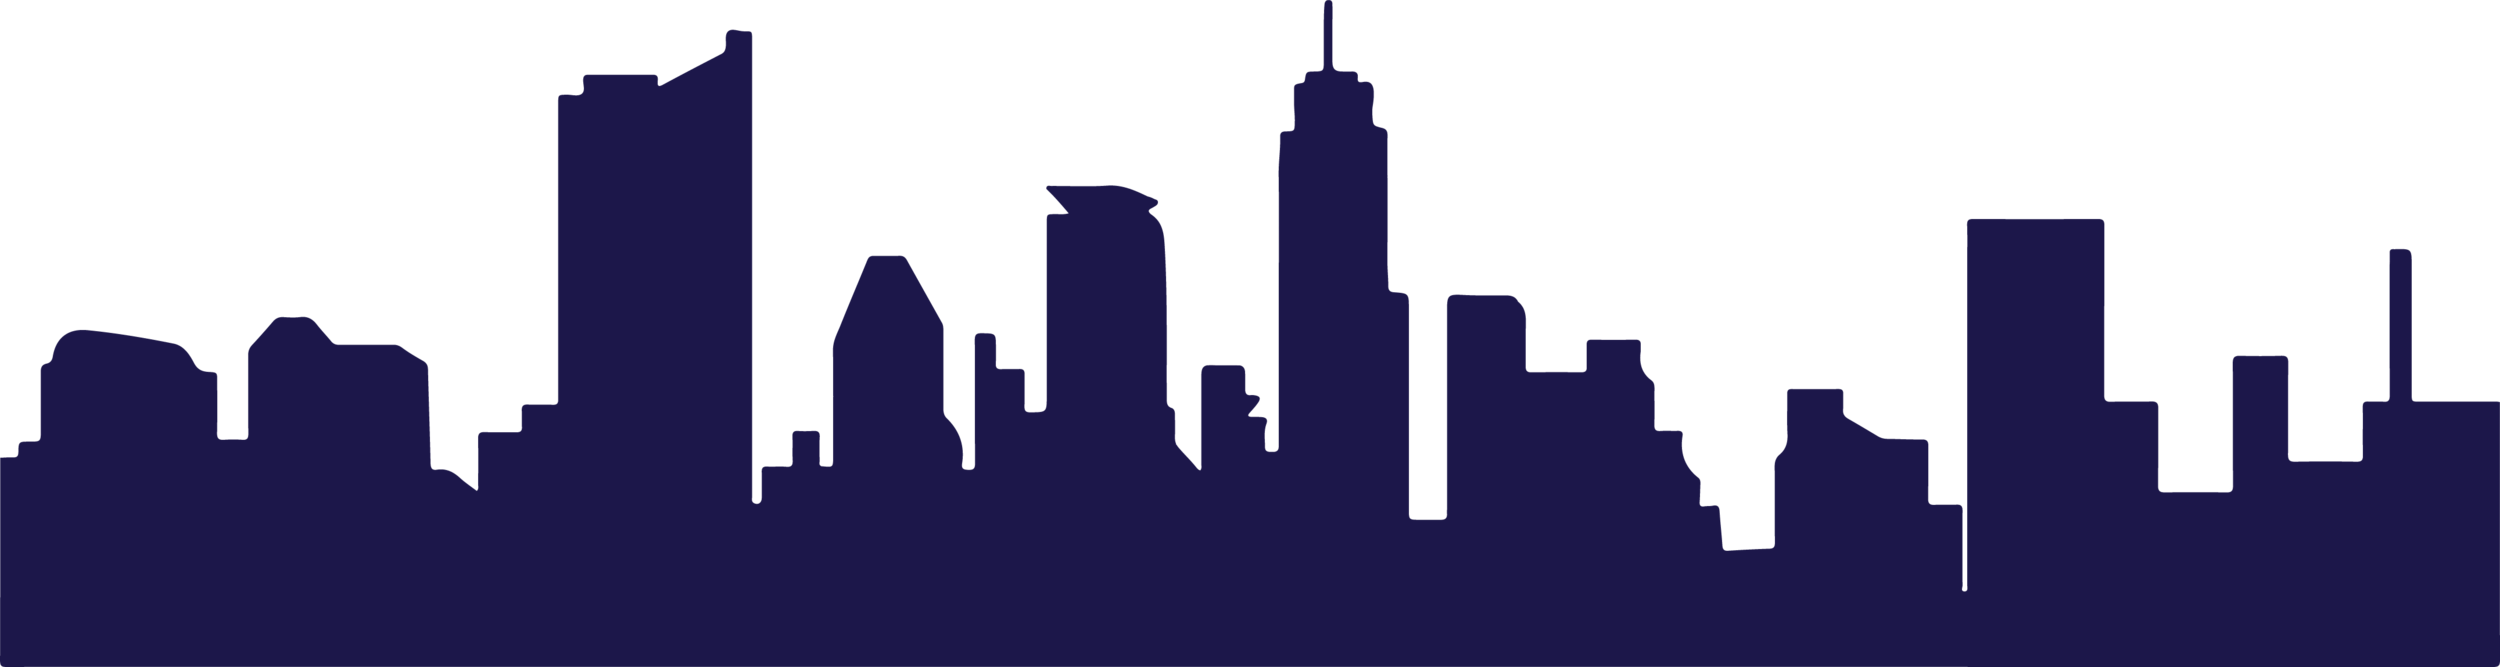 cityscape.png